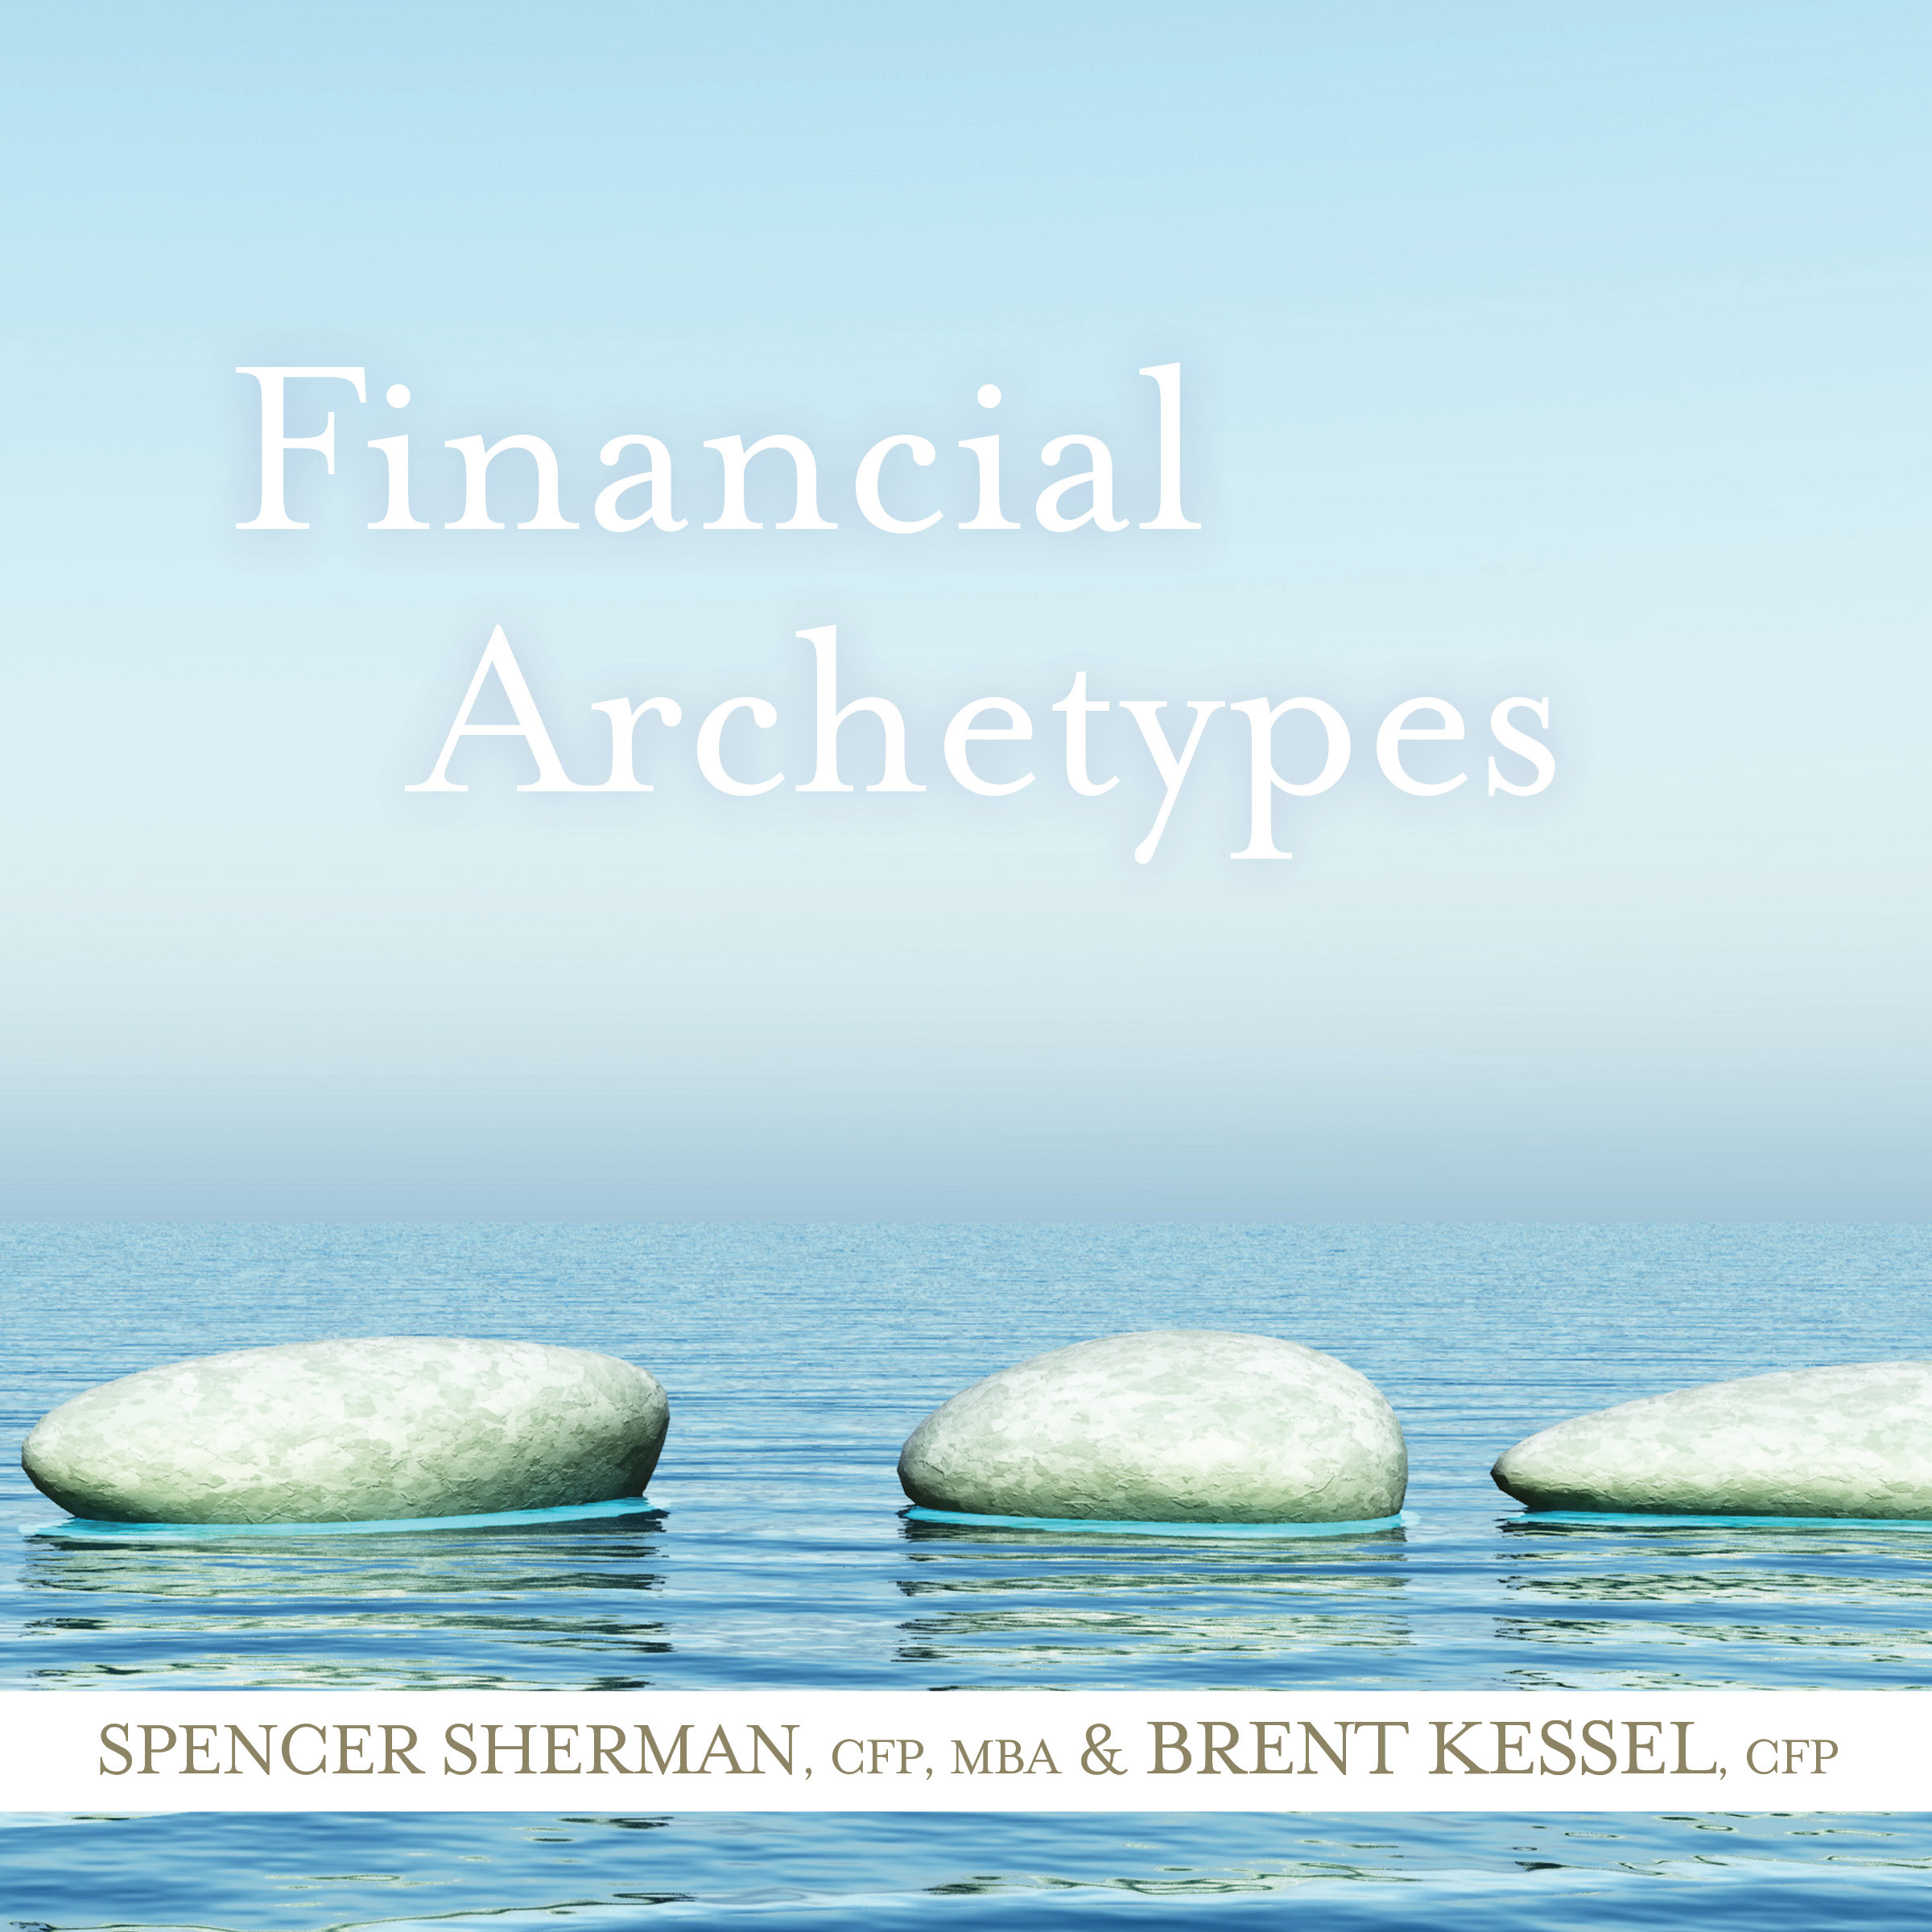 Financial Archetypes